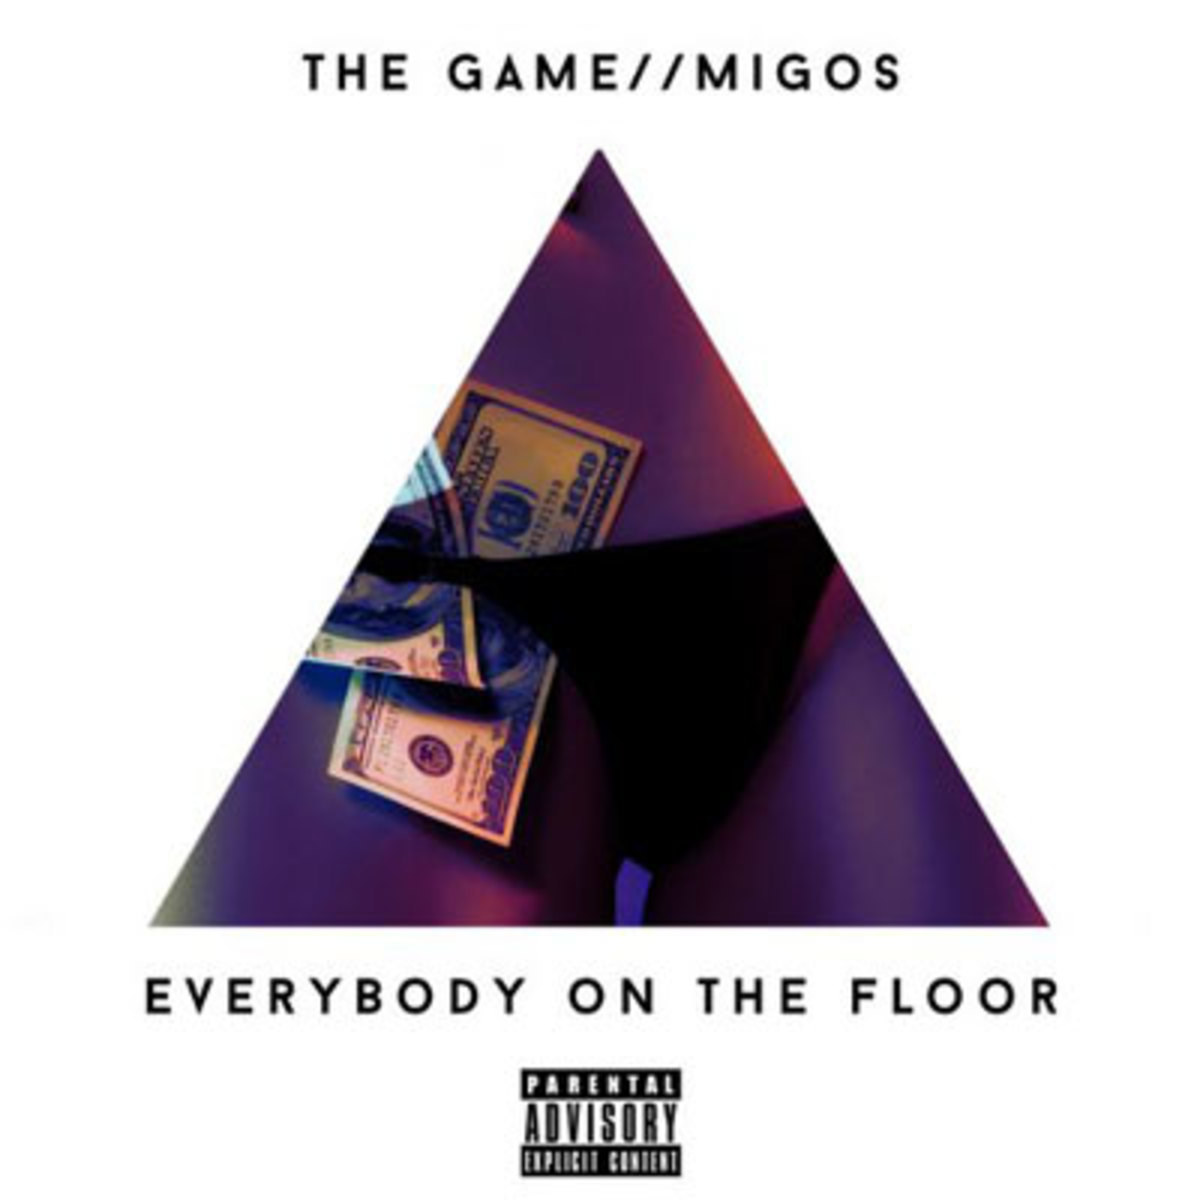 game-migos-everybody-on-the-floor.jpg